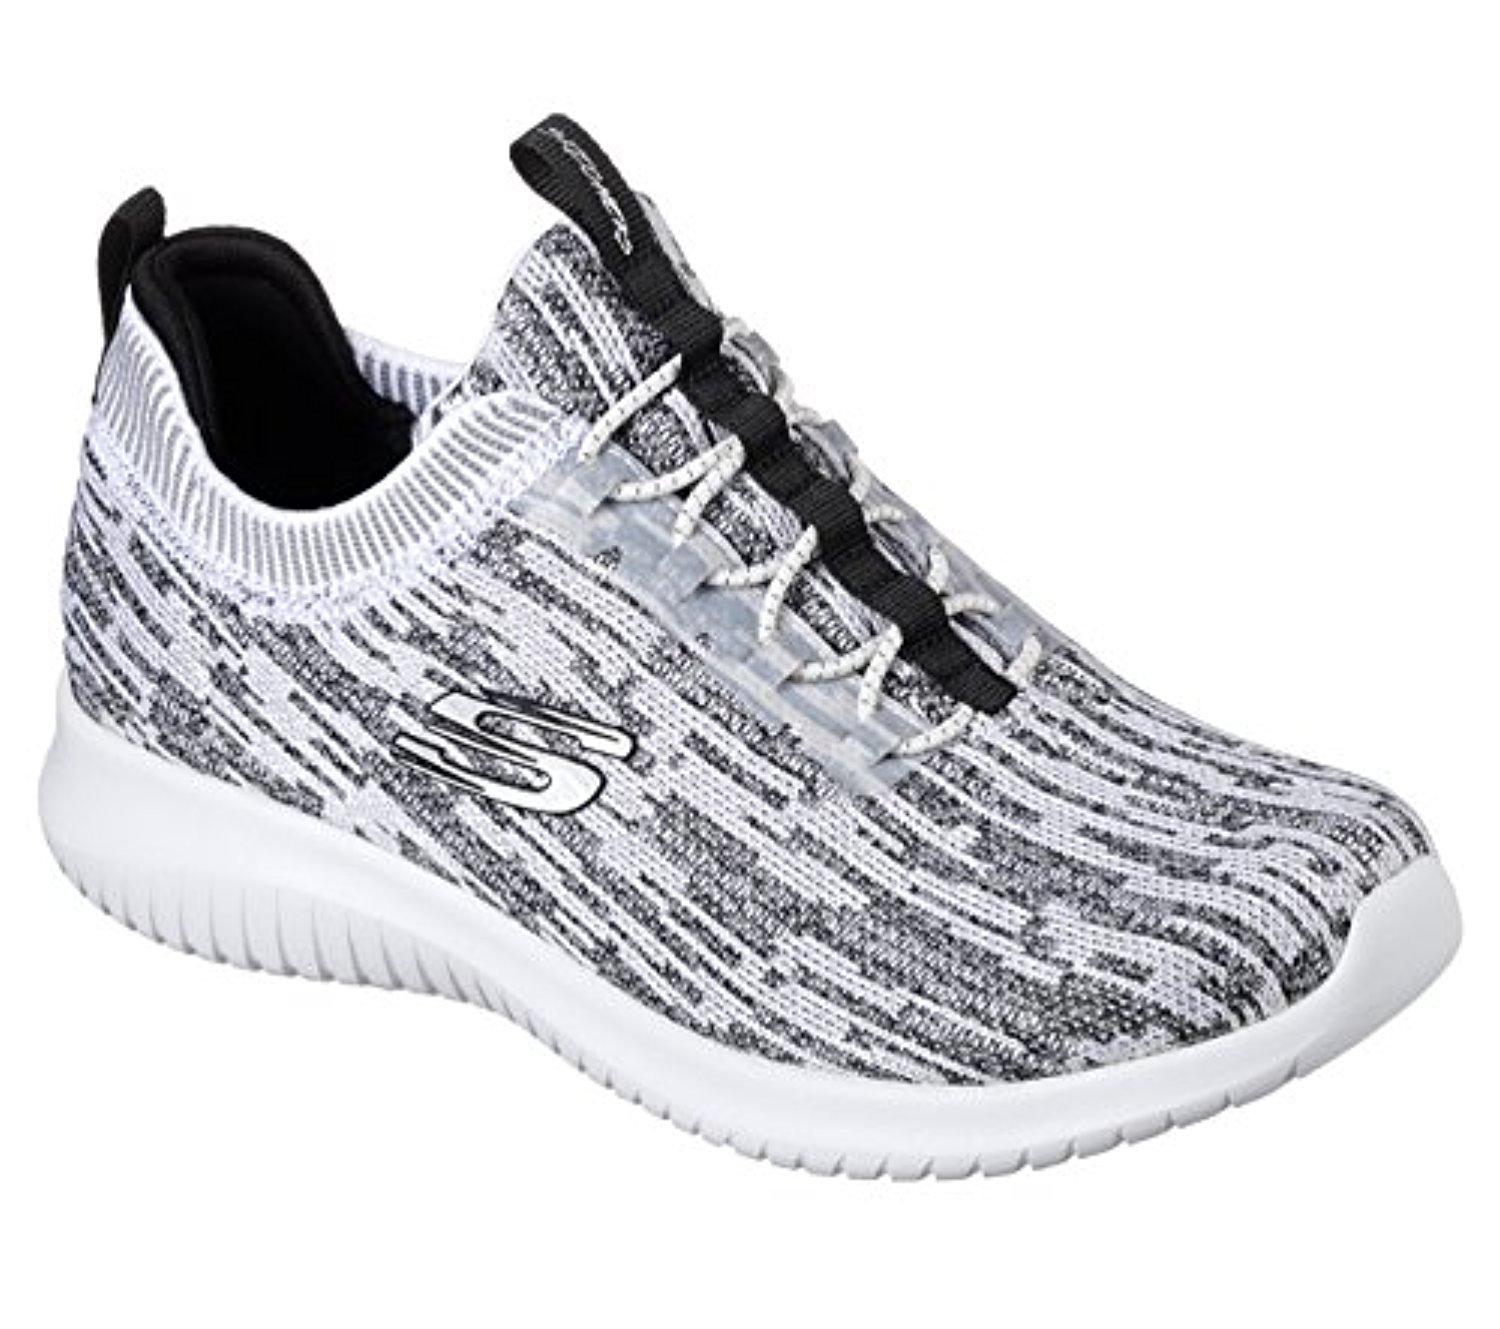 12831 White Black Skechers Shoe Memory Foam Women Slip On Comfort Walk Soft Mesh 12831WBK by Skechers